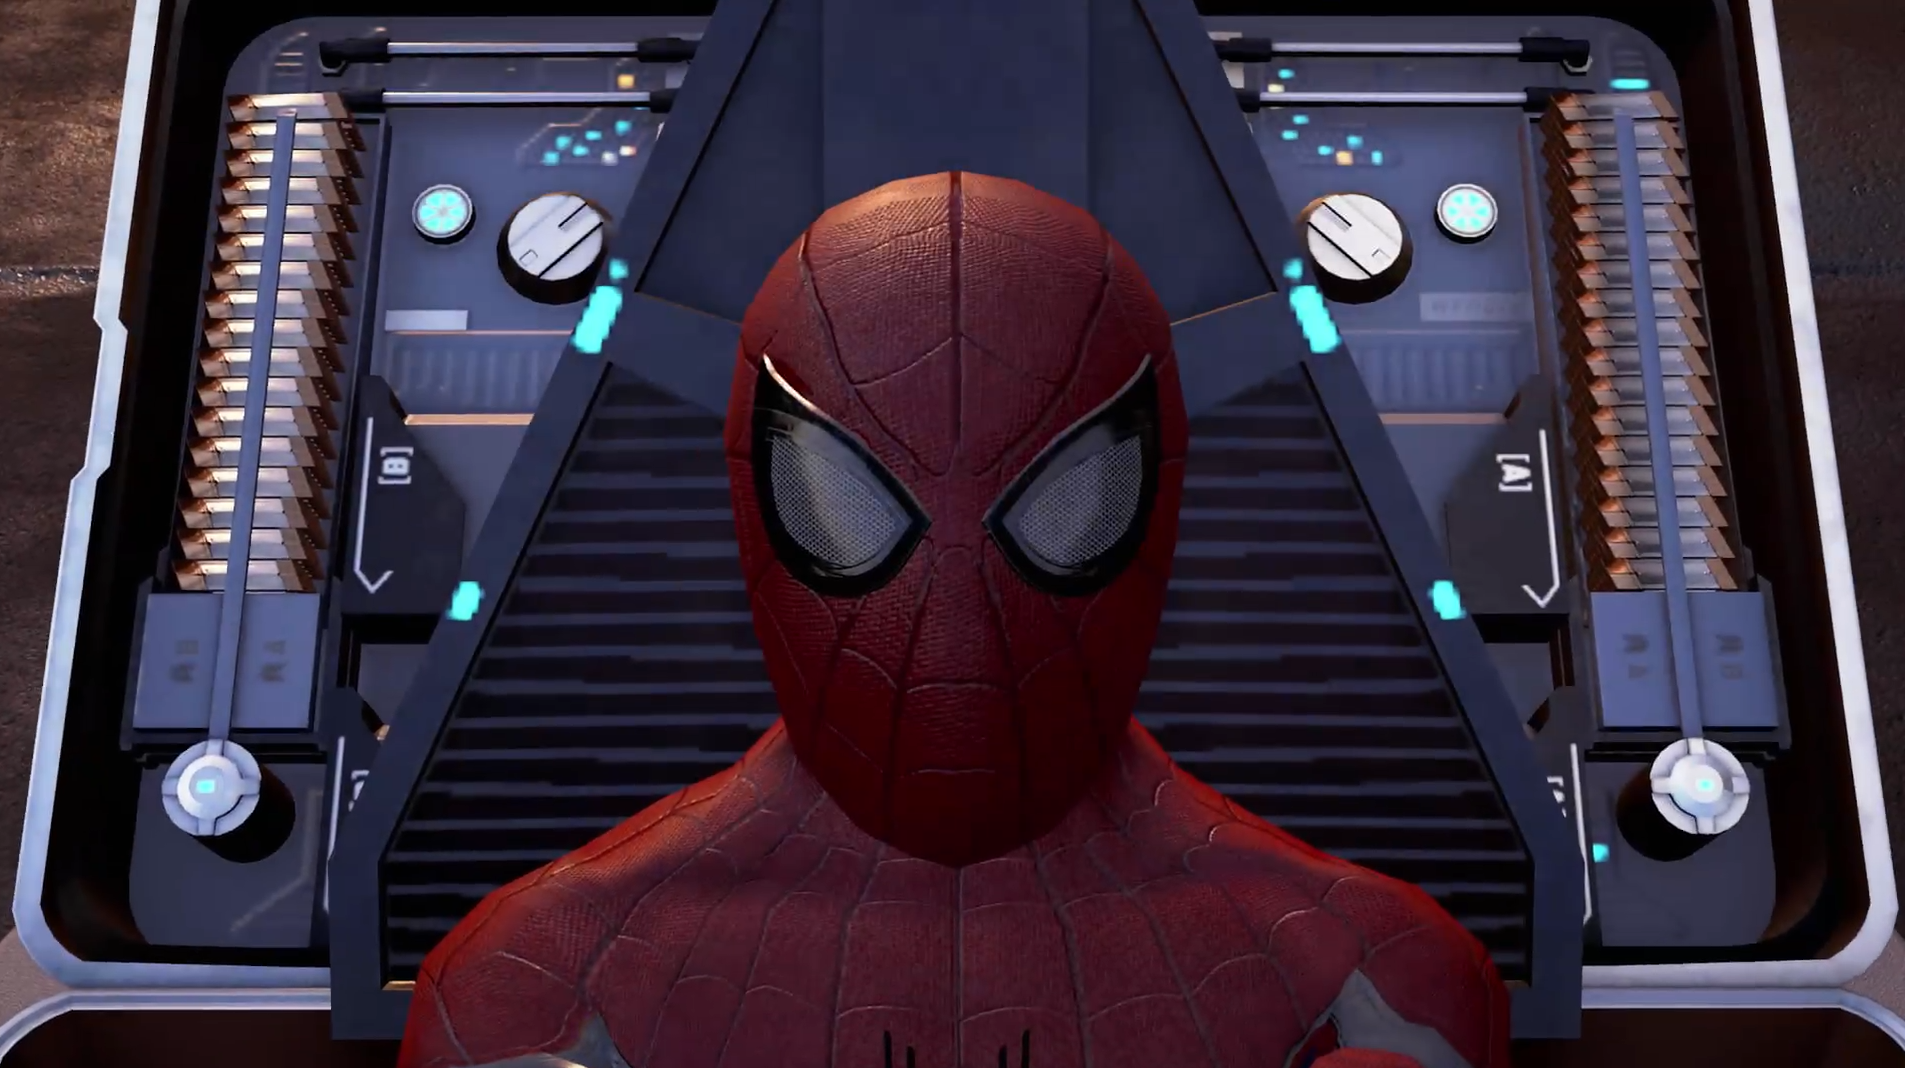 Thumbnail for Spider-Man: Homecoming VR Experience